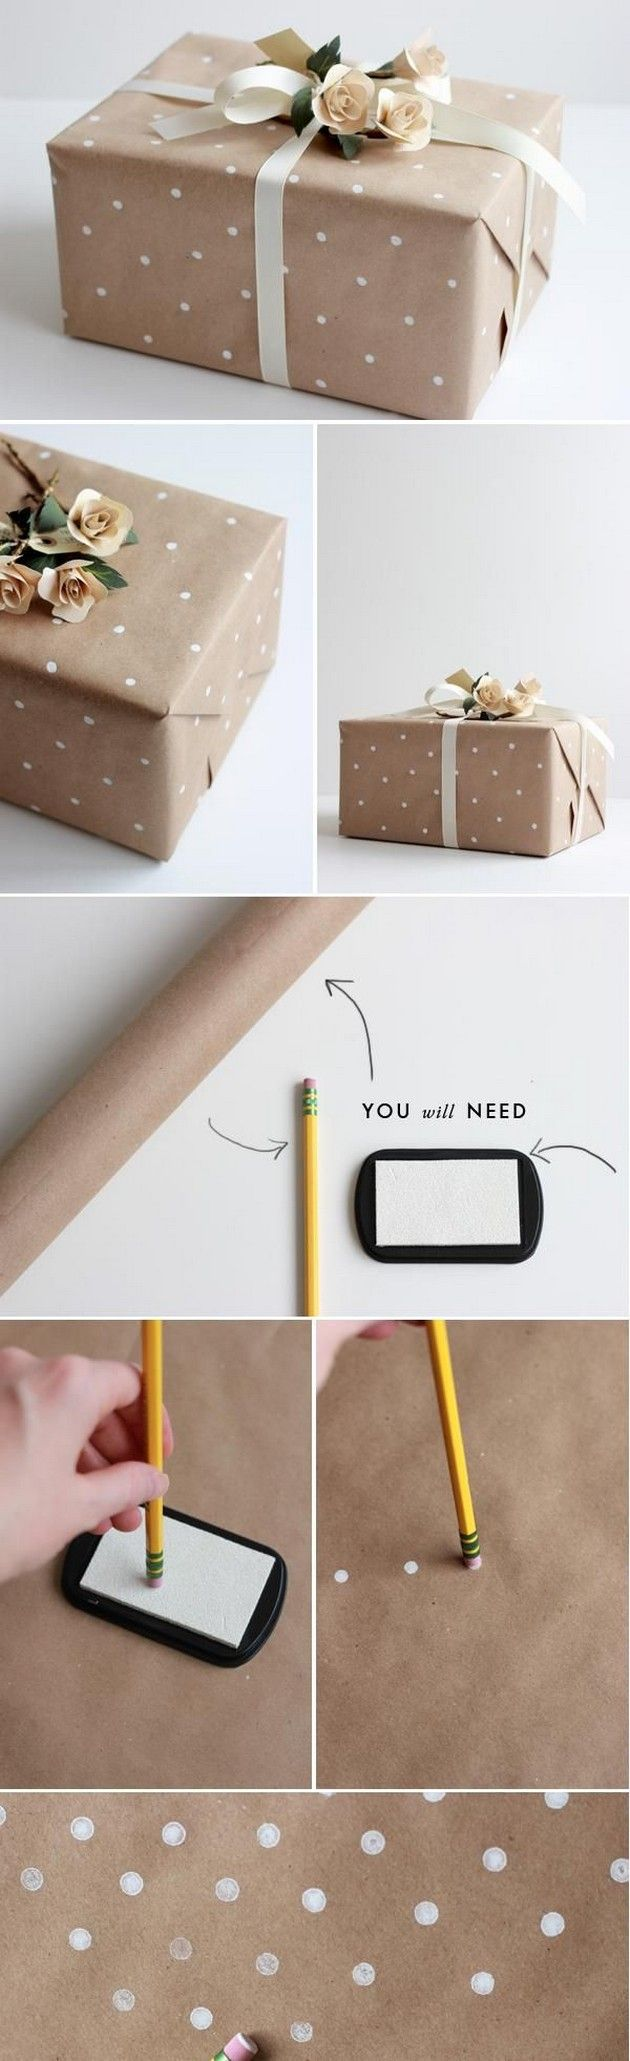 Rather than running out for wrapping paper, polka dot your own. #DIY #homemade